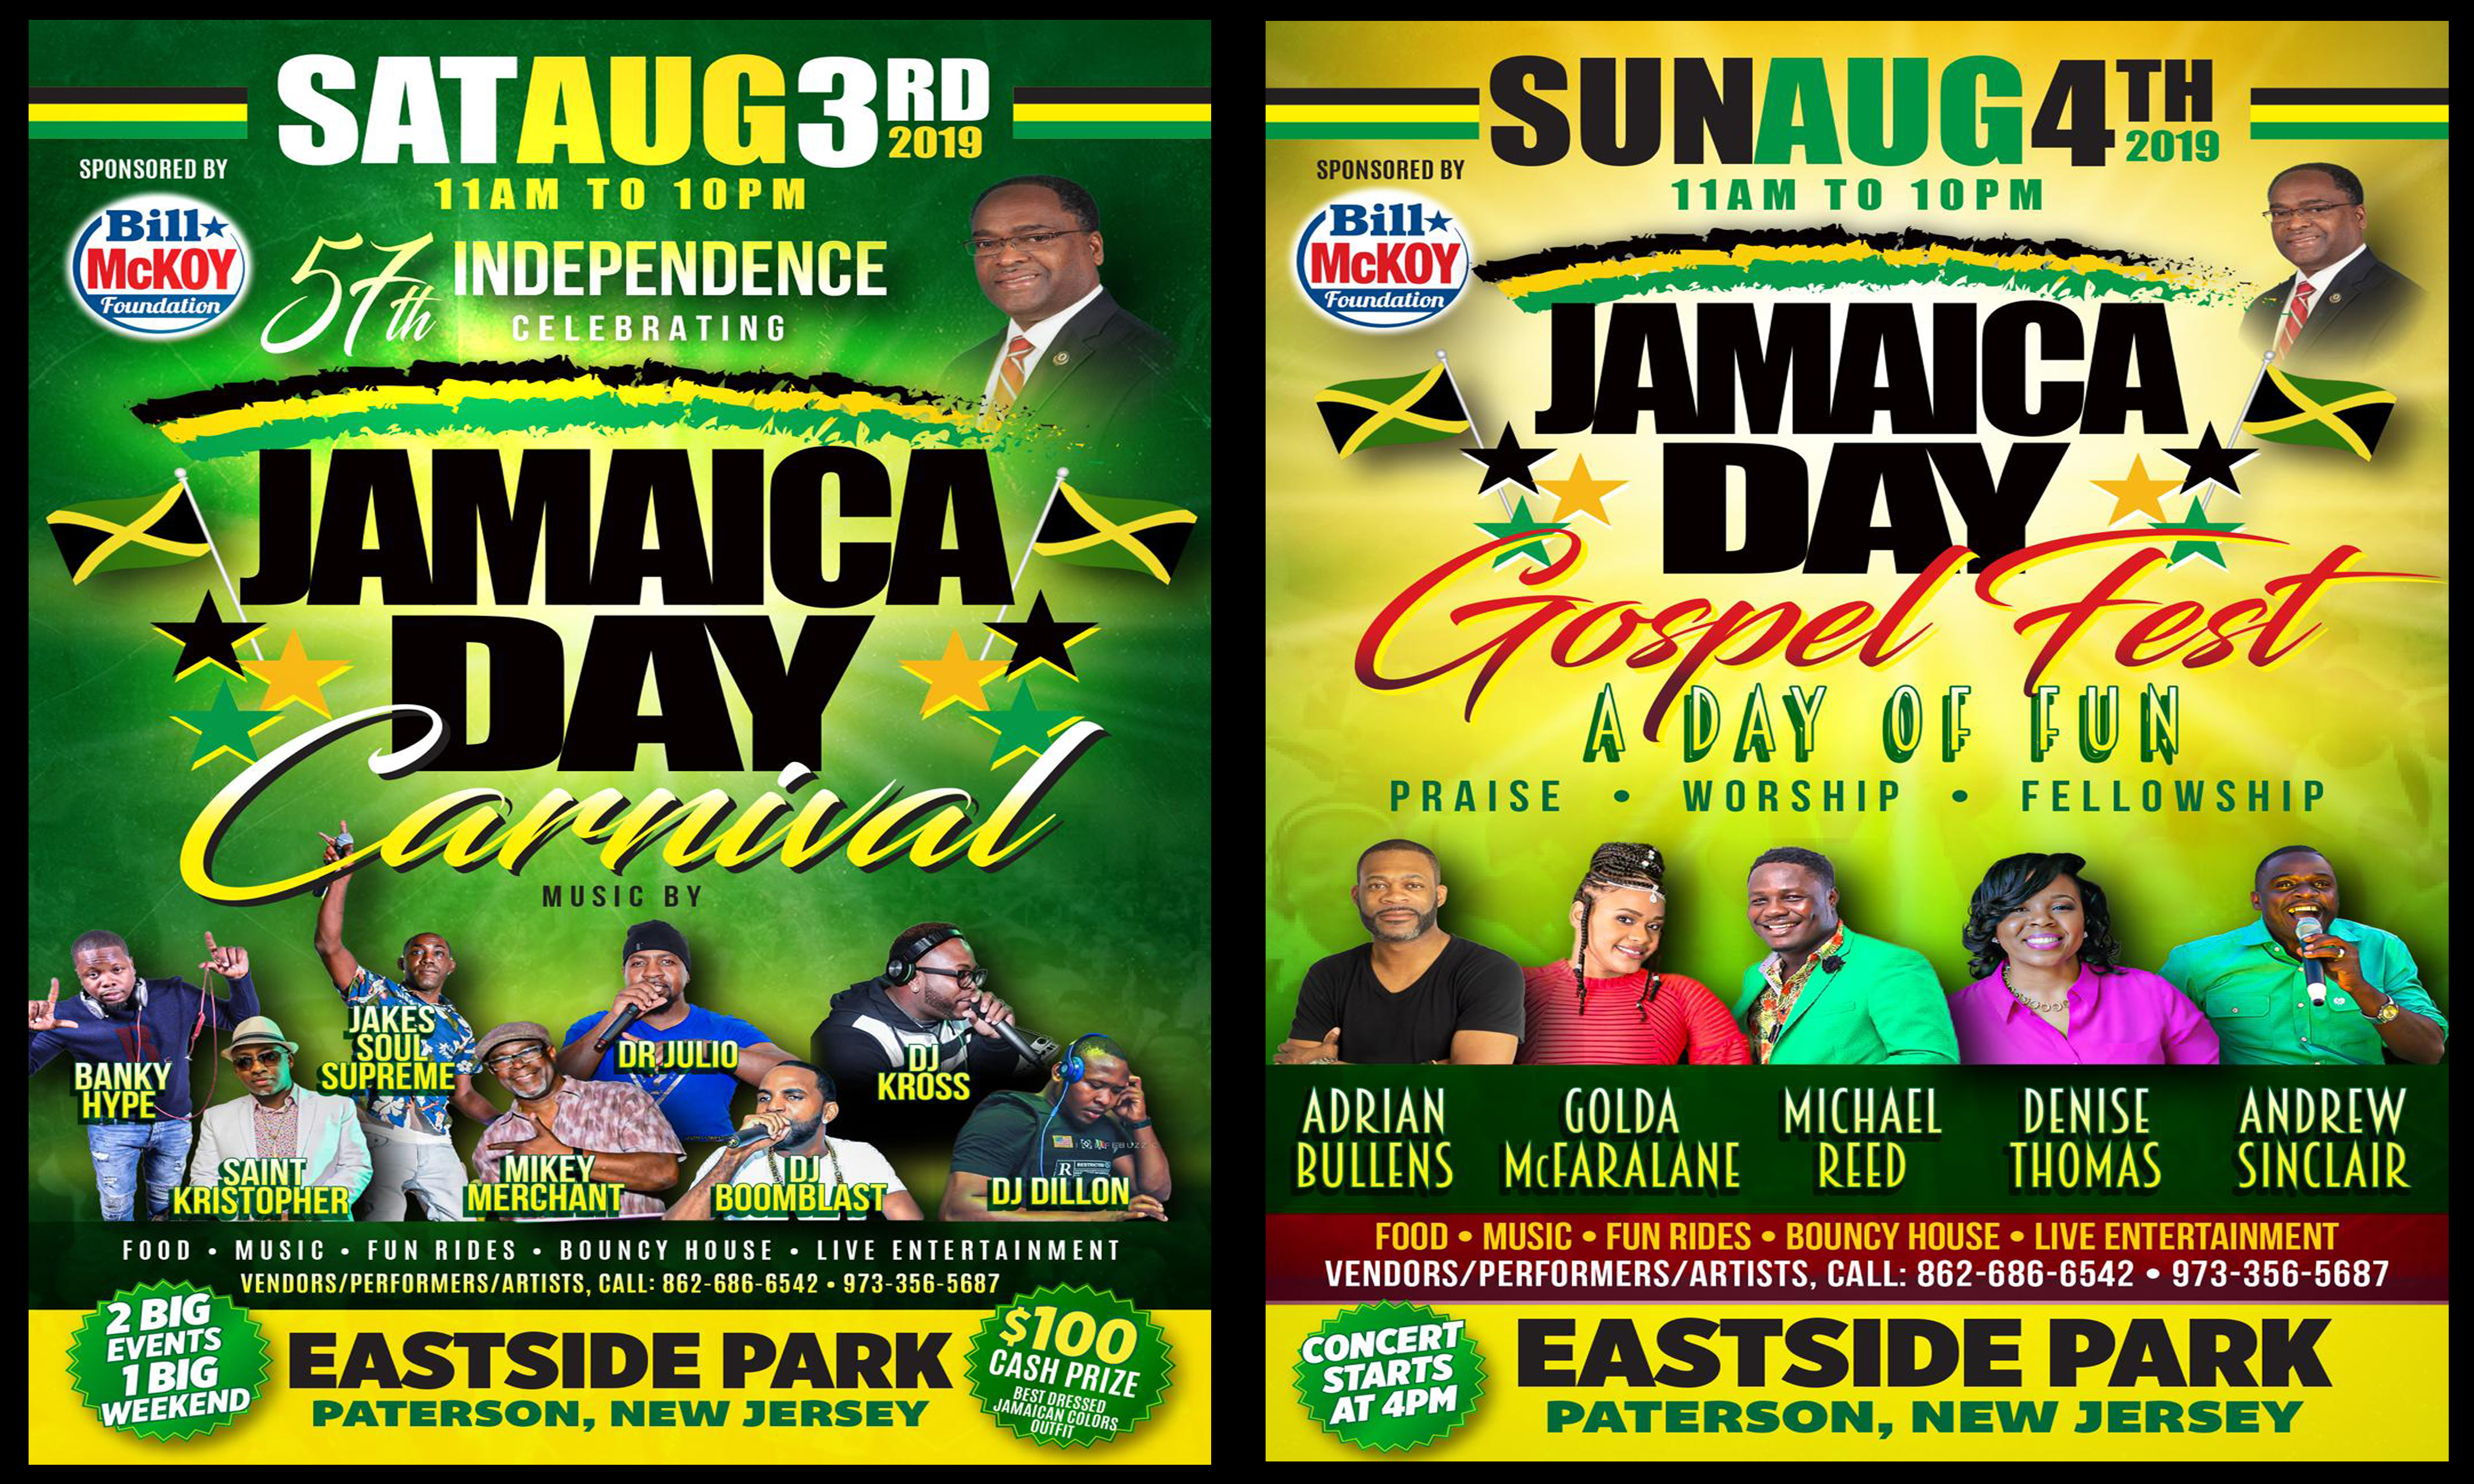 JAMAICA DAY CARNIVAL AND GOSPEL FEST COMBINED FLYERS